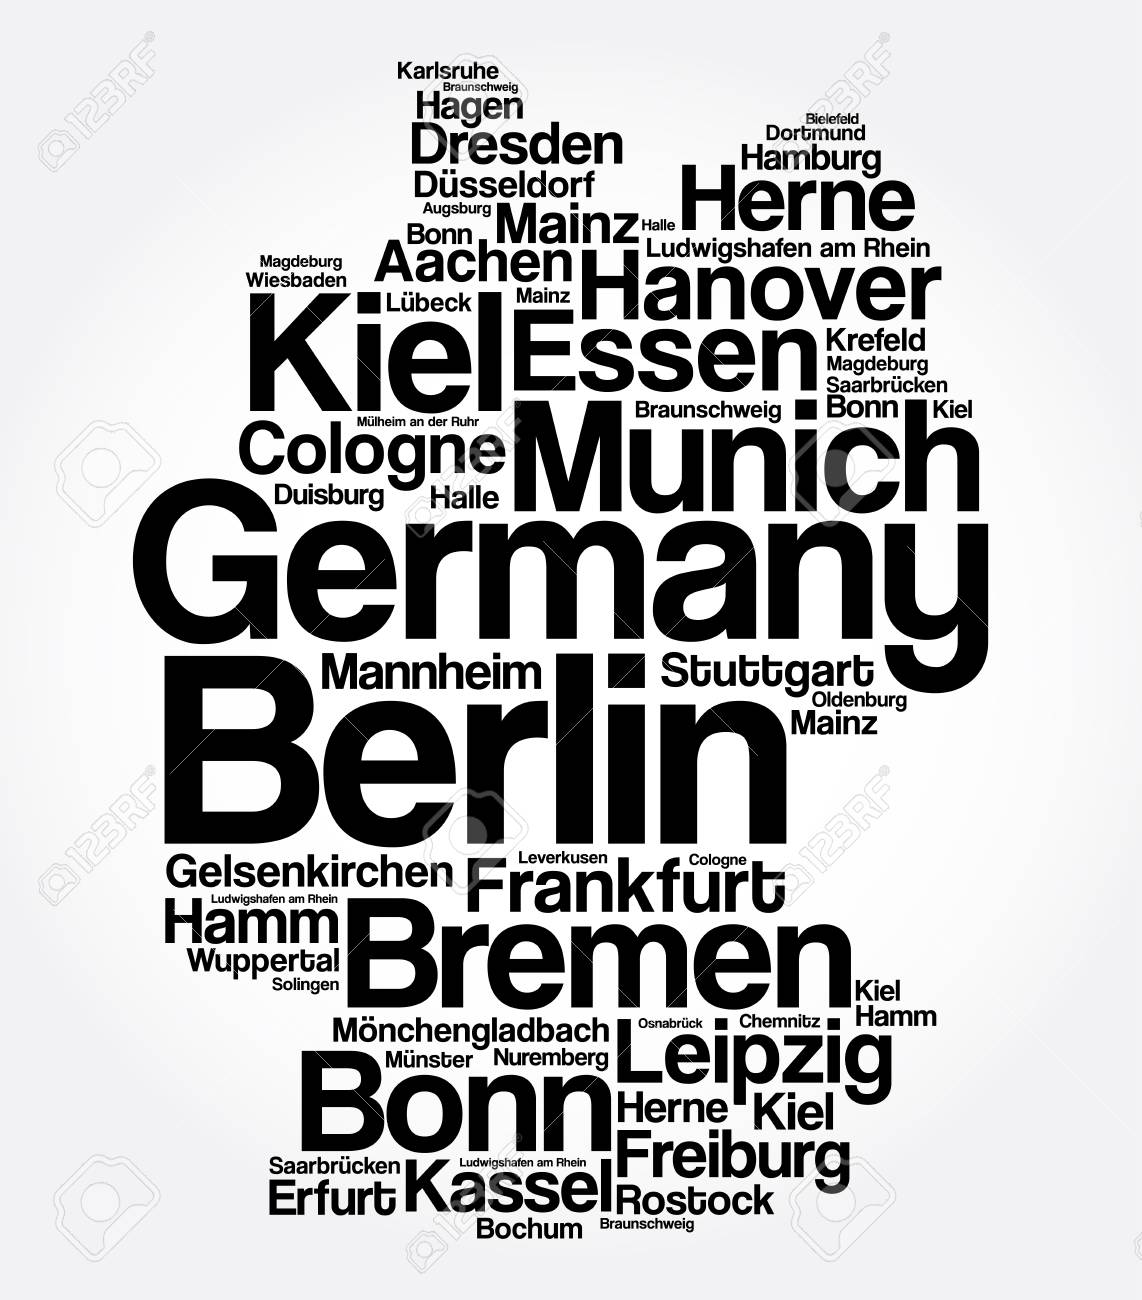 List of cities and towns in GERMANY, map word cloud collage,.. Germany Cities Towns Map on map africa cities, map with cities, german cities, map equatorial guinea cities, map of german states and capitals, map ethiopia cities, map of bavaria cities, map world cities, map japan cities, map jordan cities, map italy cities, map france cities, map spain cities, map england cities, map romania cities, map georgia cities, map india cities, map europe cities, map co cities, map turkey cities,